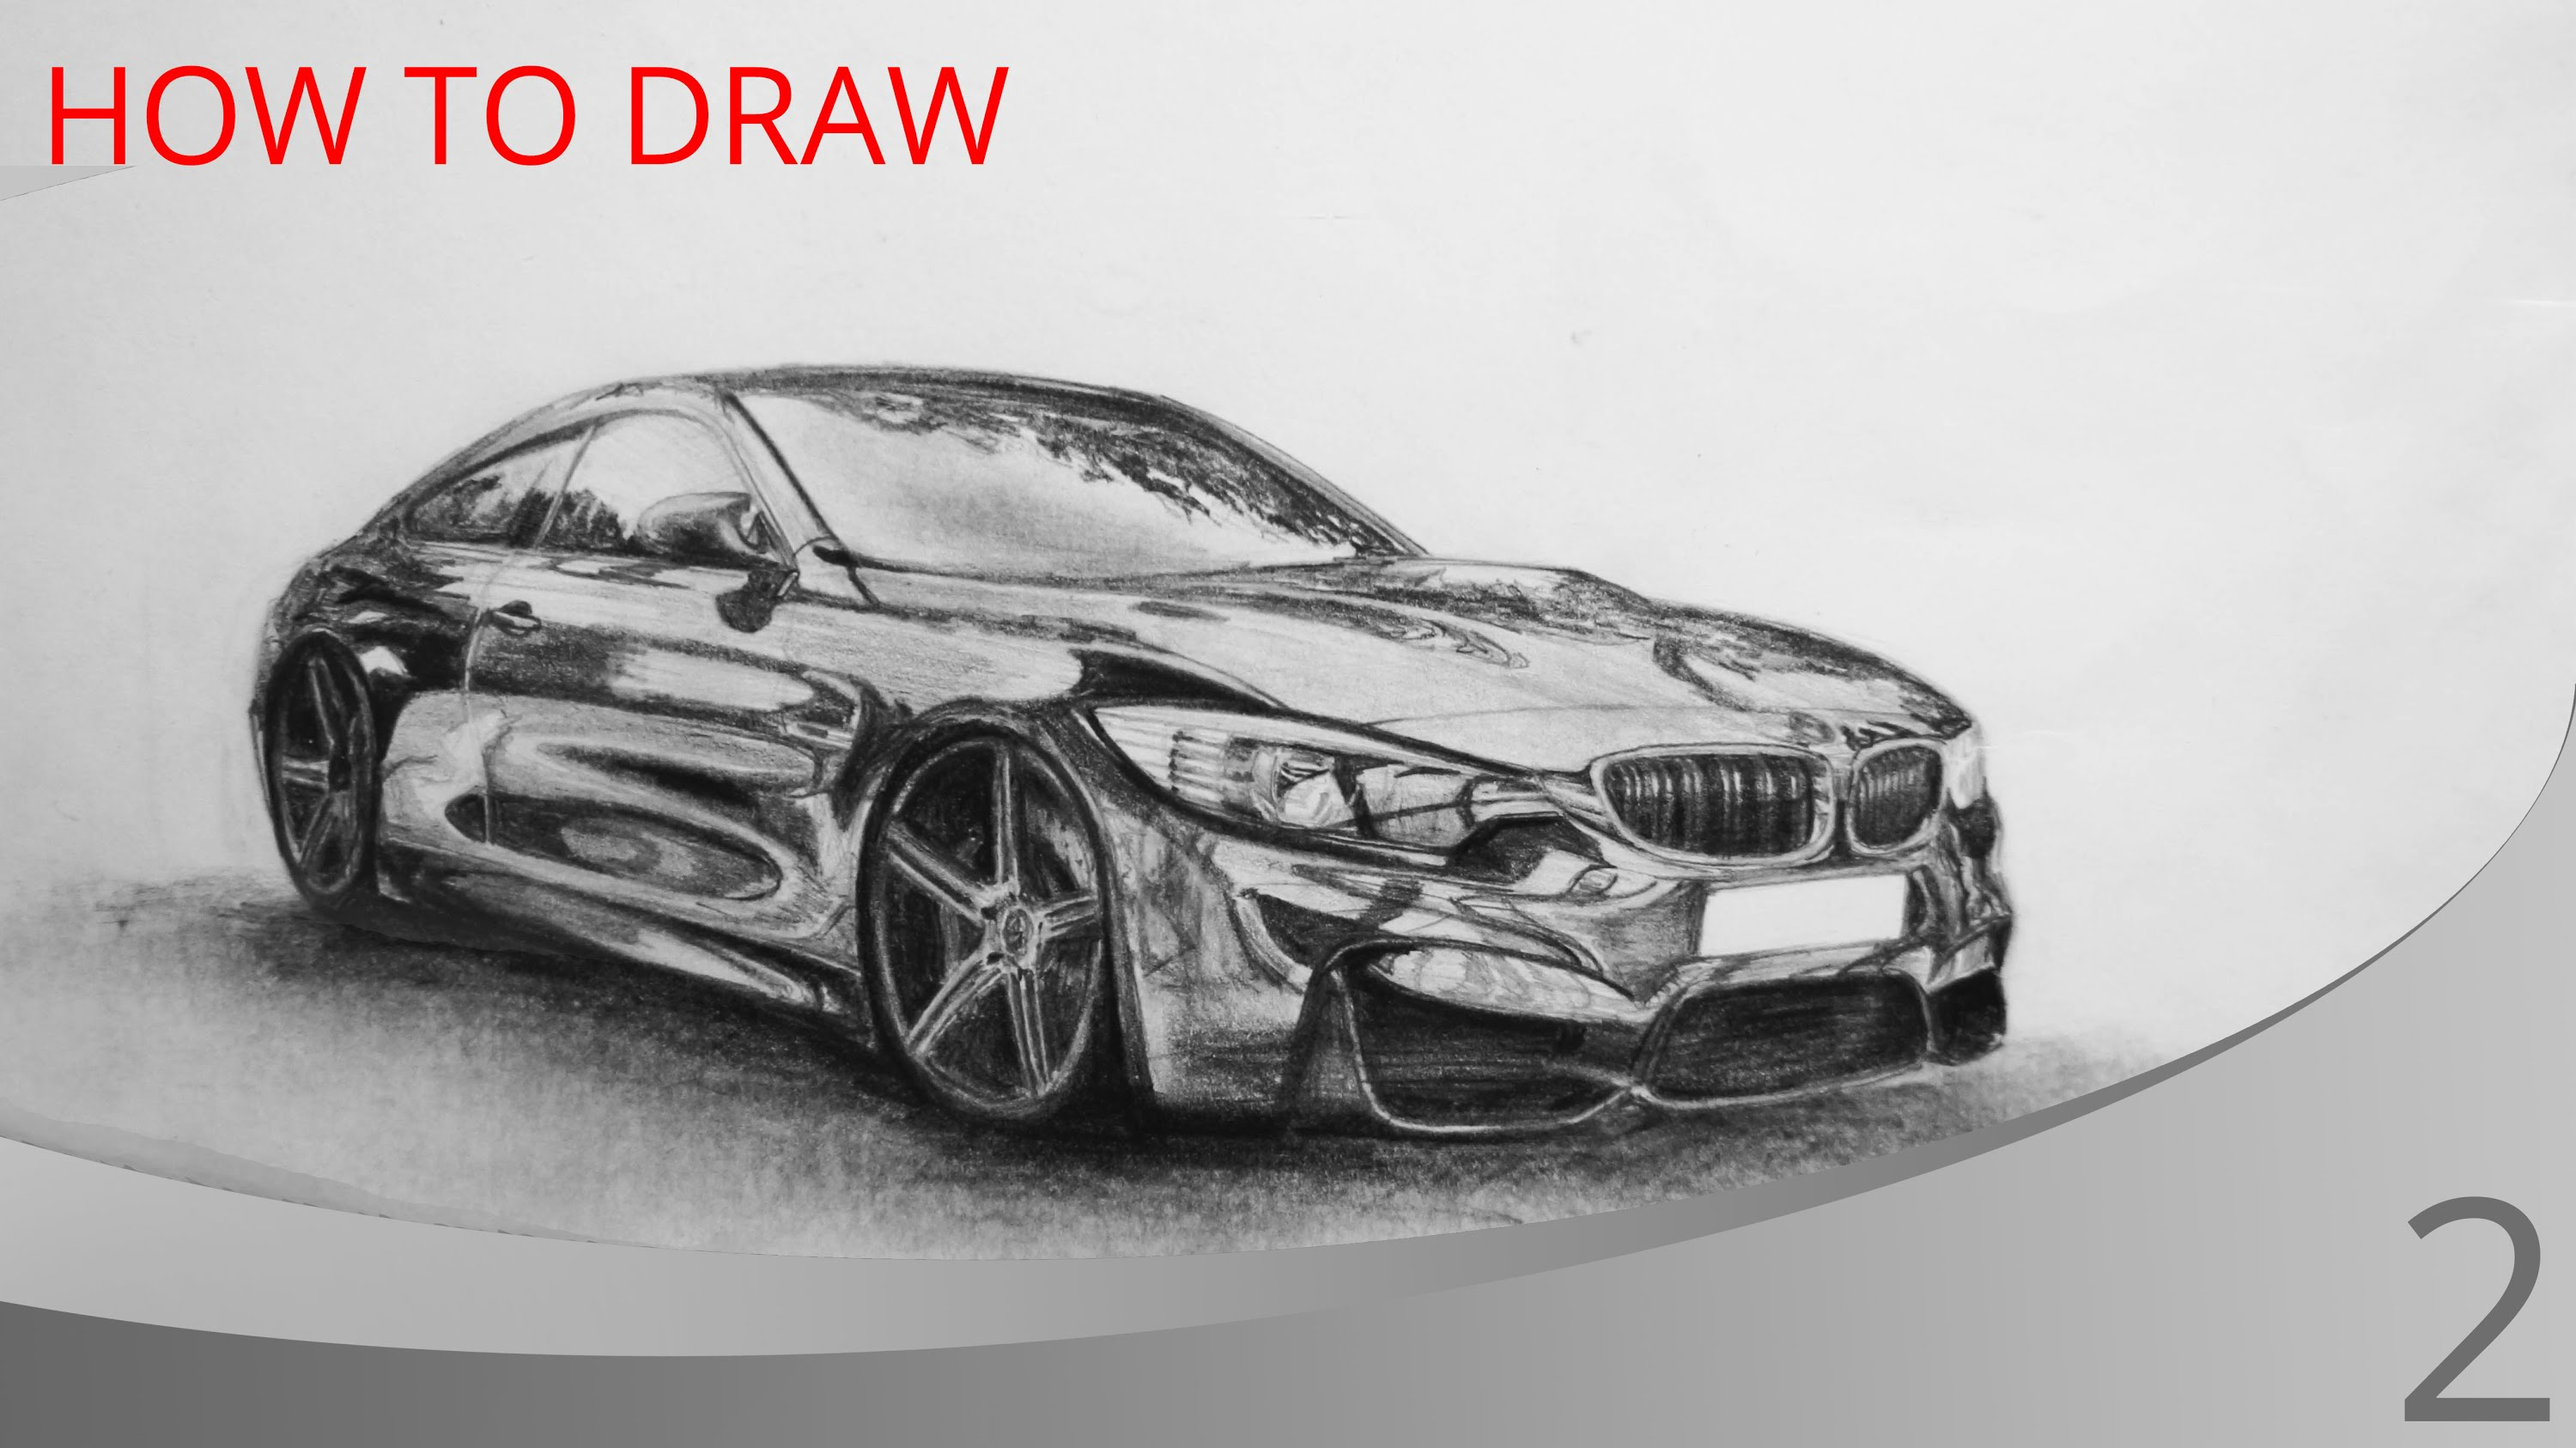 Drawn vehicle doodle Car M4  Draw to